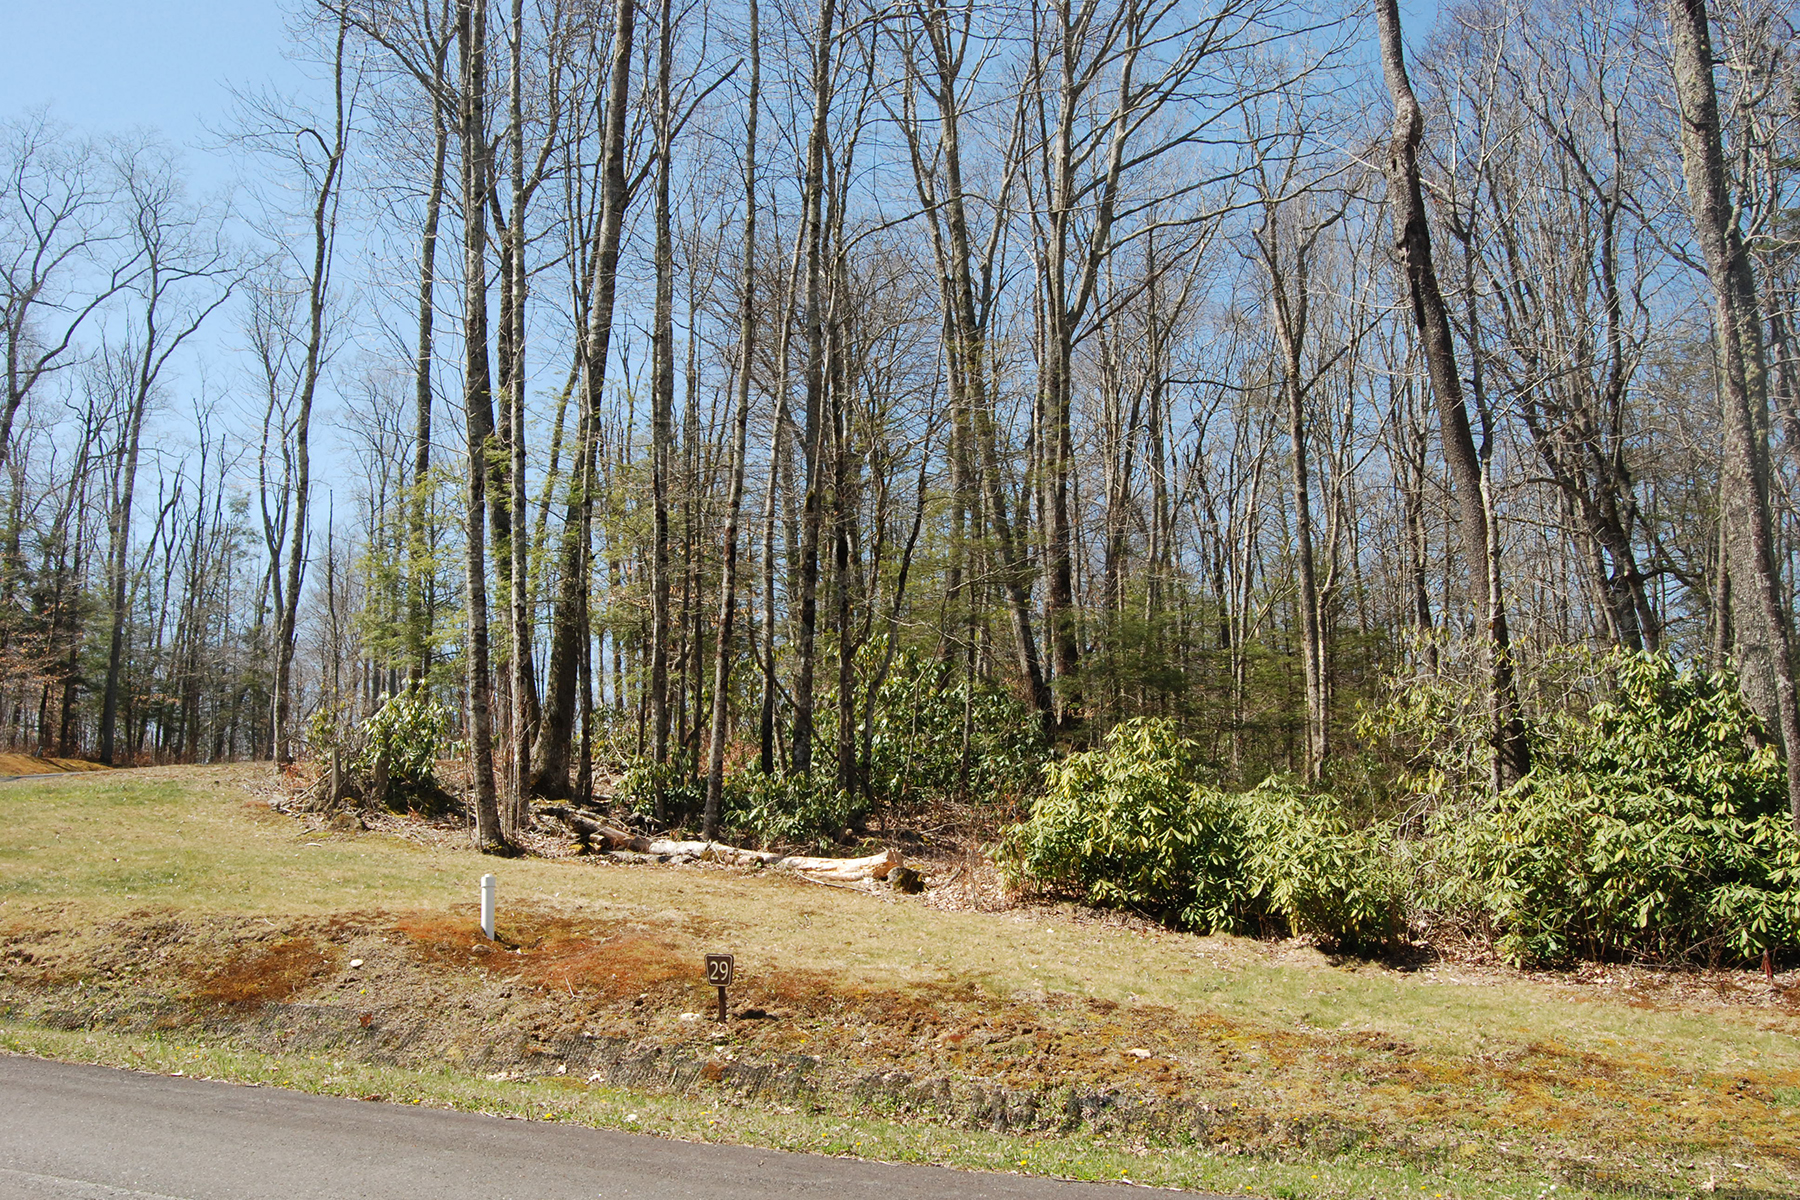 Land for Sale at LINVILLE - THE VILLAGE AT GRANDFATHER Lot 29 Linville River Ln, Linville, North Carolina 28646 United States